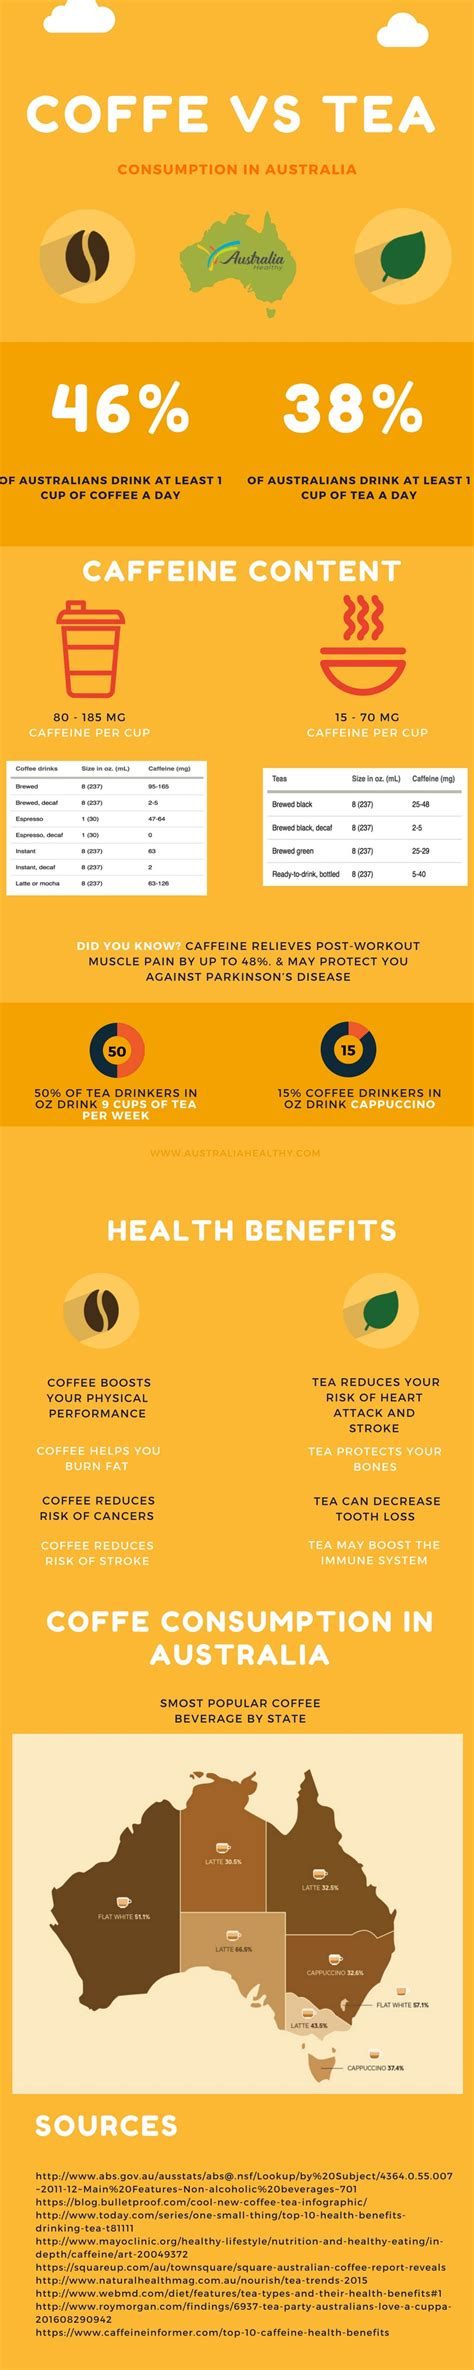 History of tea vs coffee both coffee and tea have legendary pasts, including wars that have. Coffee VS Tea (INFOGRAPHIC) - Australiahealthy.com